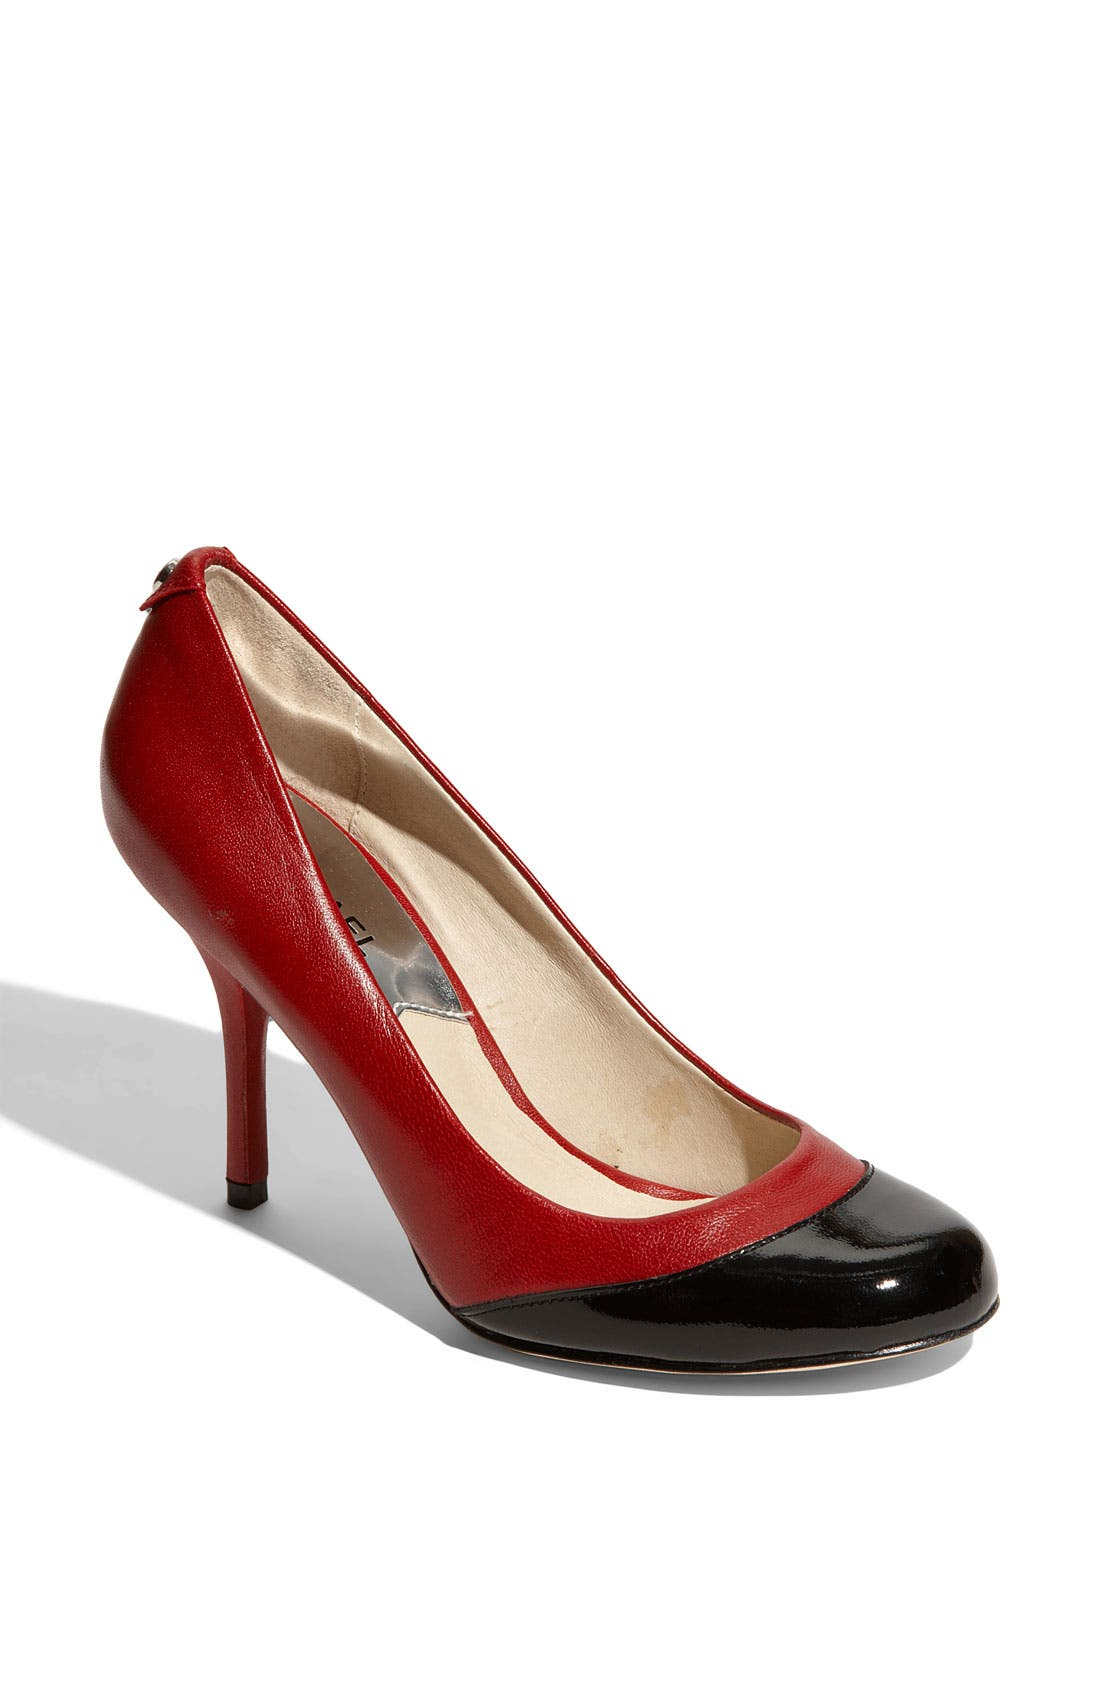 Alternate Image 1 Selected - MICHAEL Michael Kors 'Pressley' Cap Toe Pump